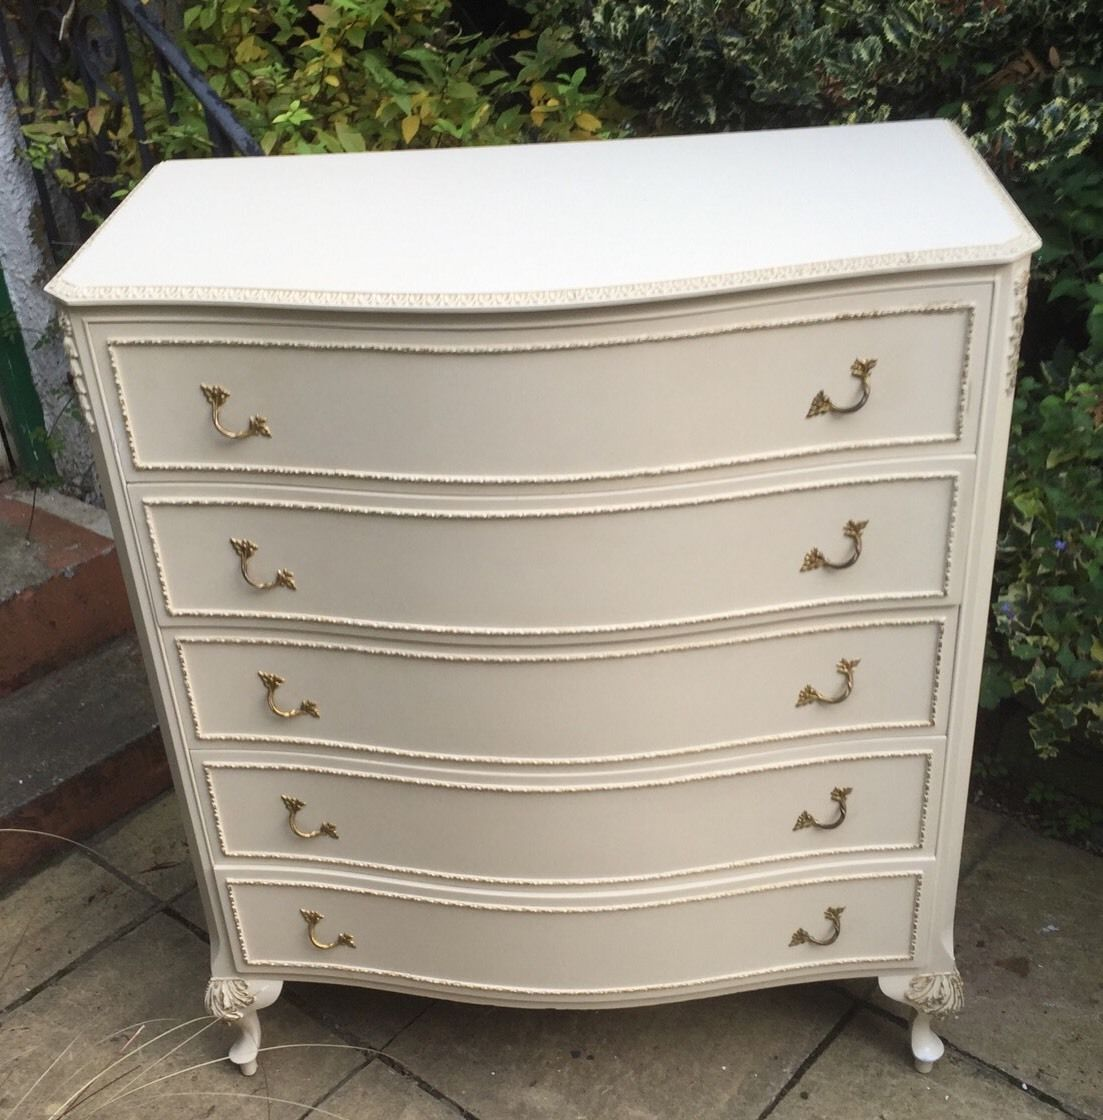 superb french style shabby chic bowfront chest of drawers water wheel furnishings. Black Bedroom Furniture Sets. Home Design Ideas